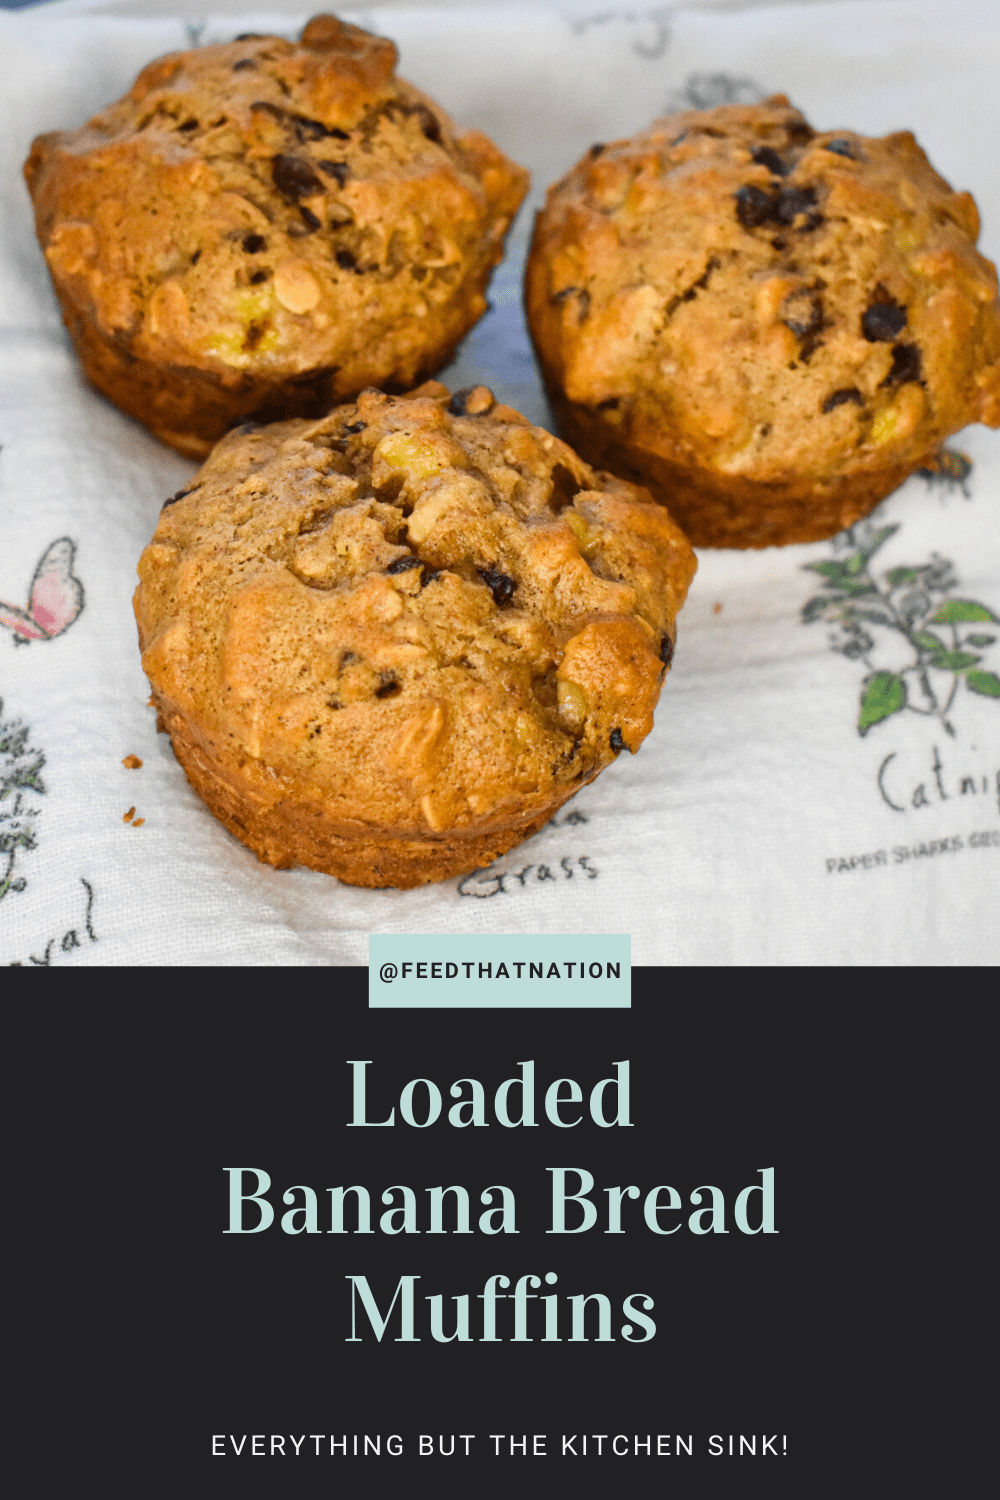 Loaded Banana Bread Muffins